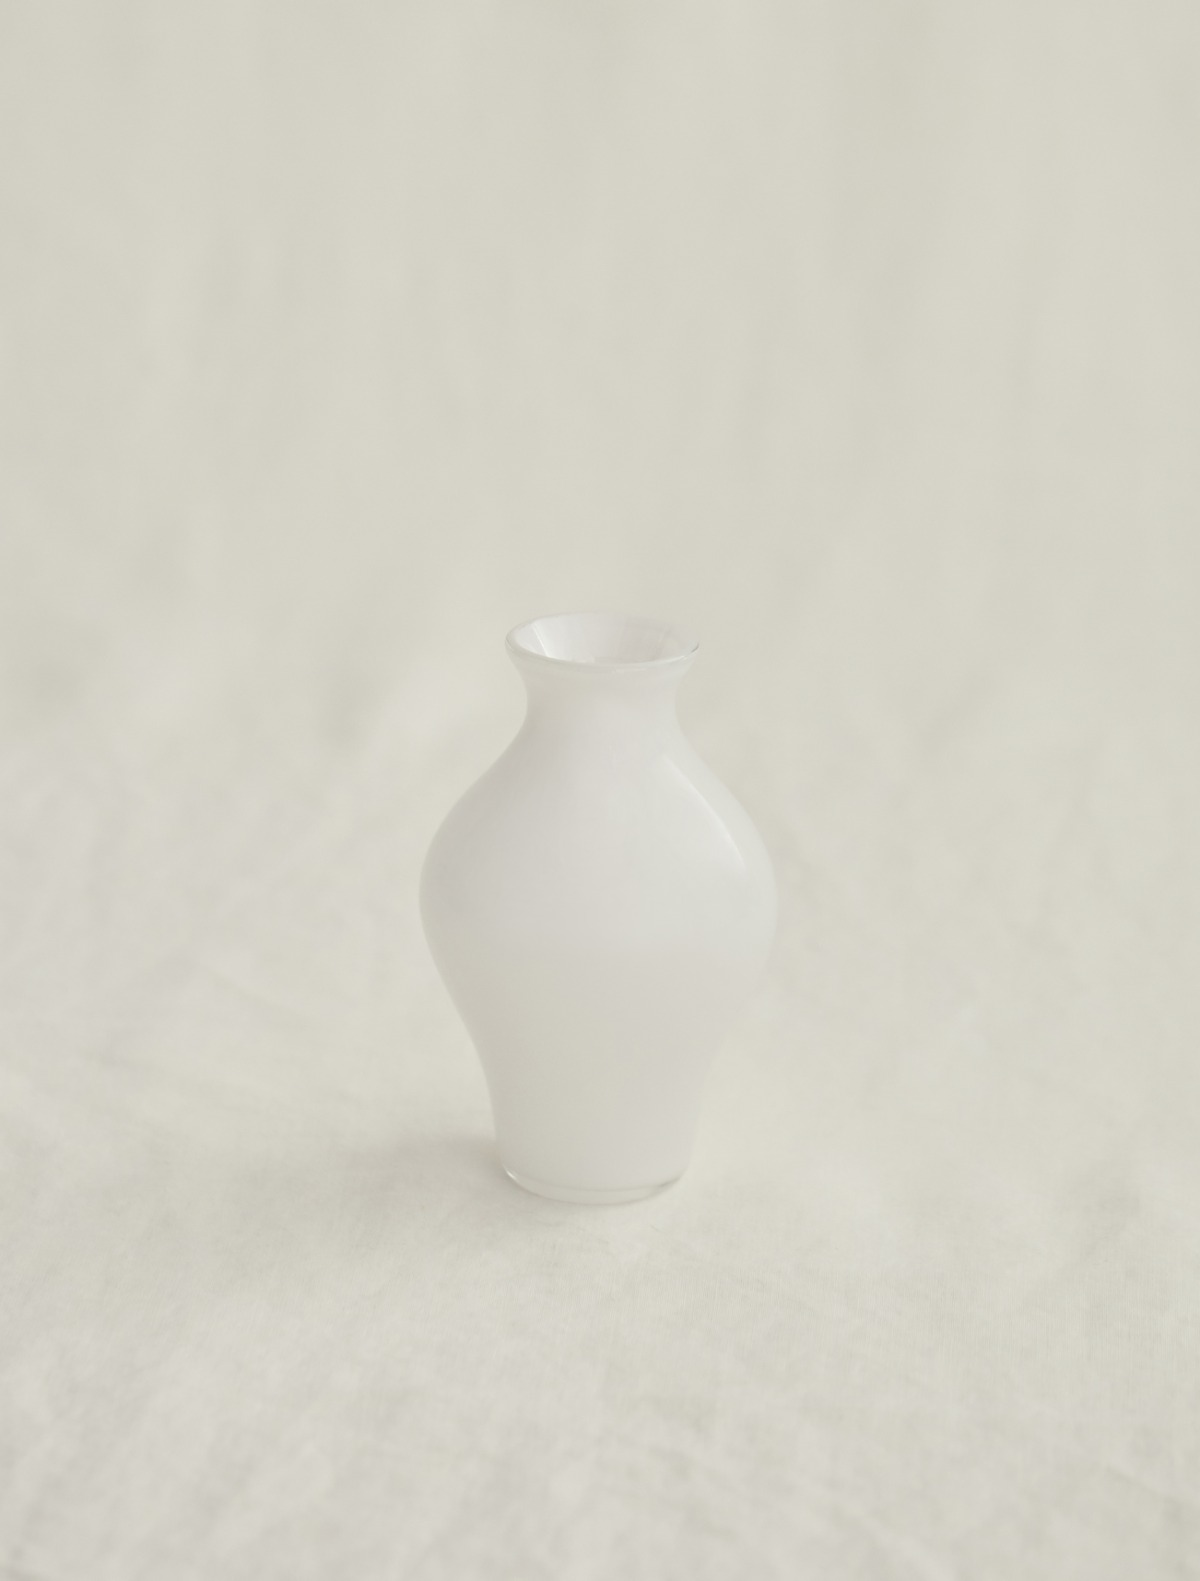 김동완 작가의 Handblown White Glass